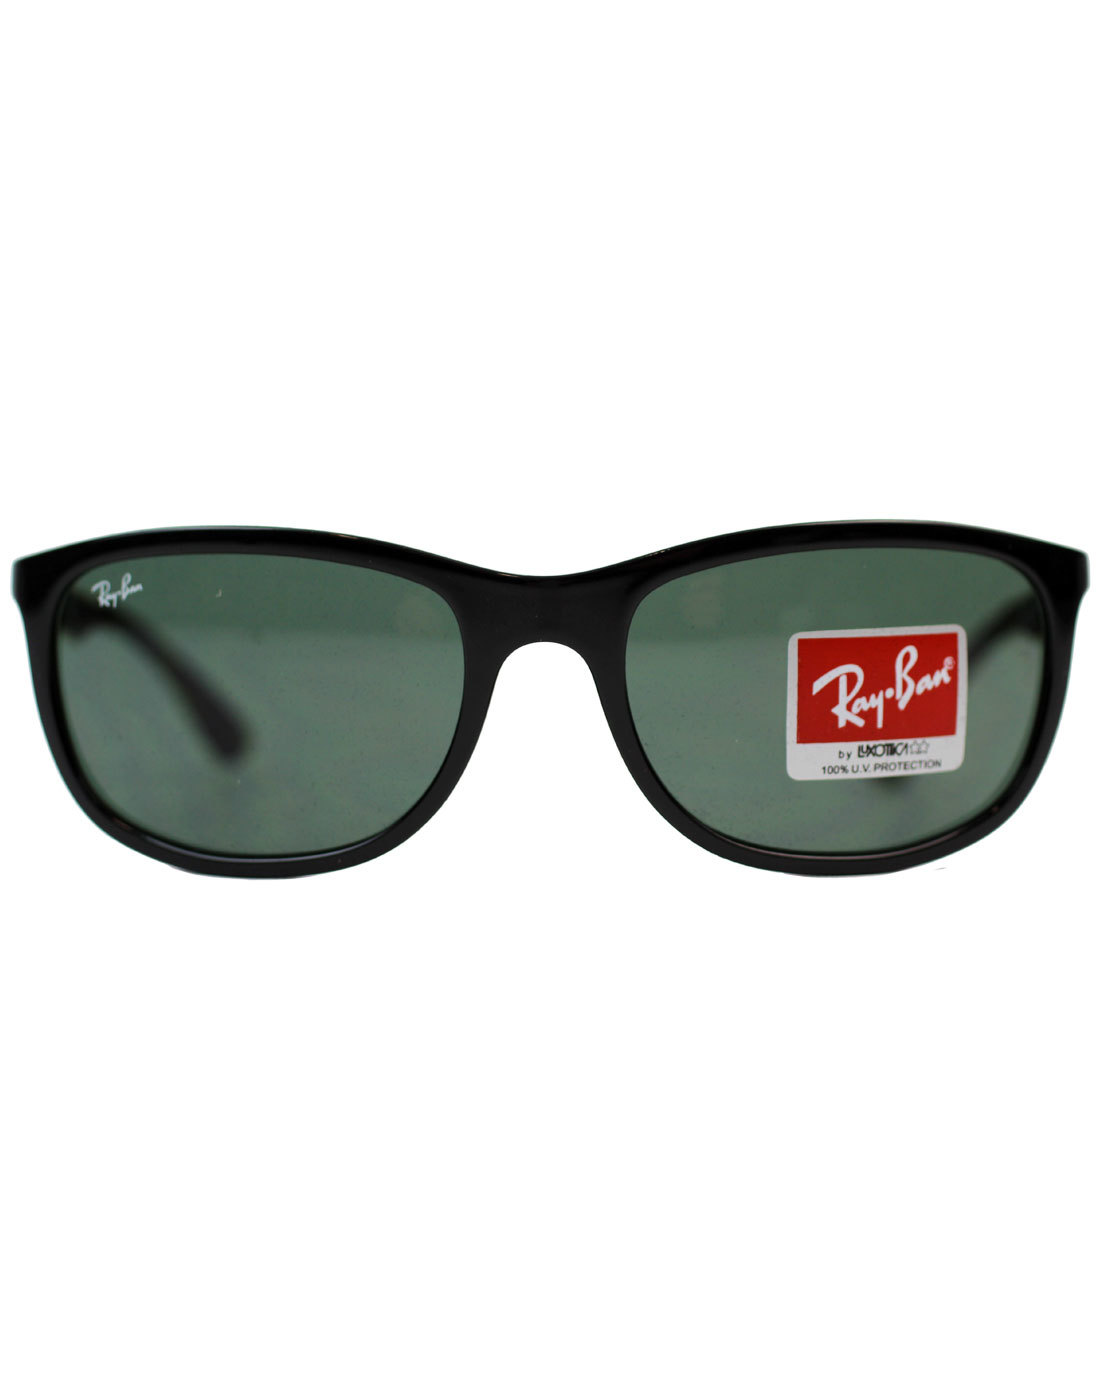 Wraparound Wayfarer RAY-BAN Retro Mod Sunglasses